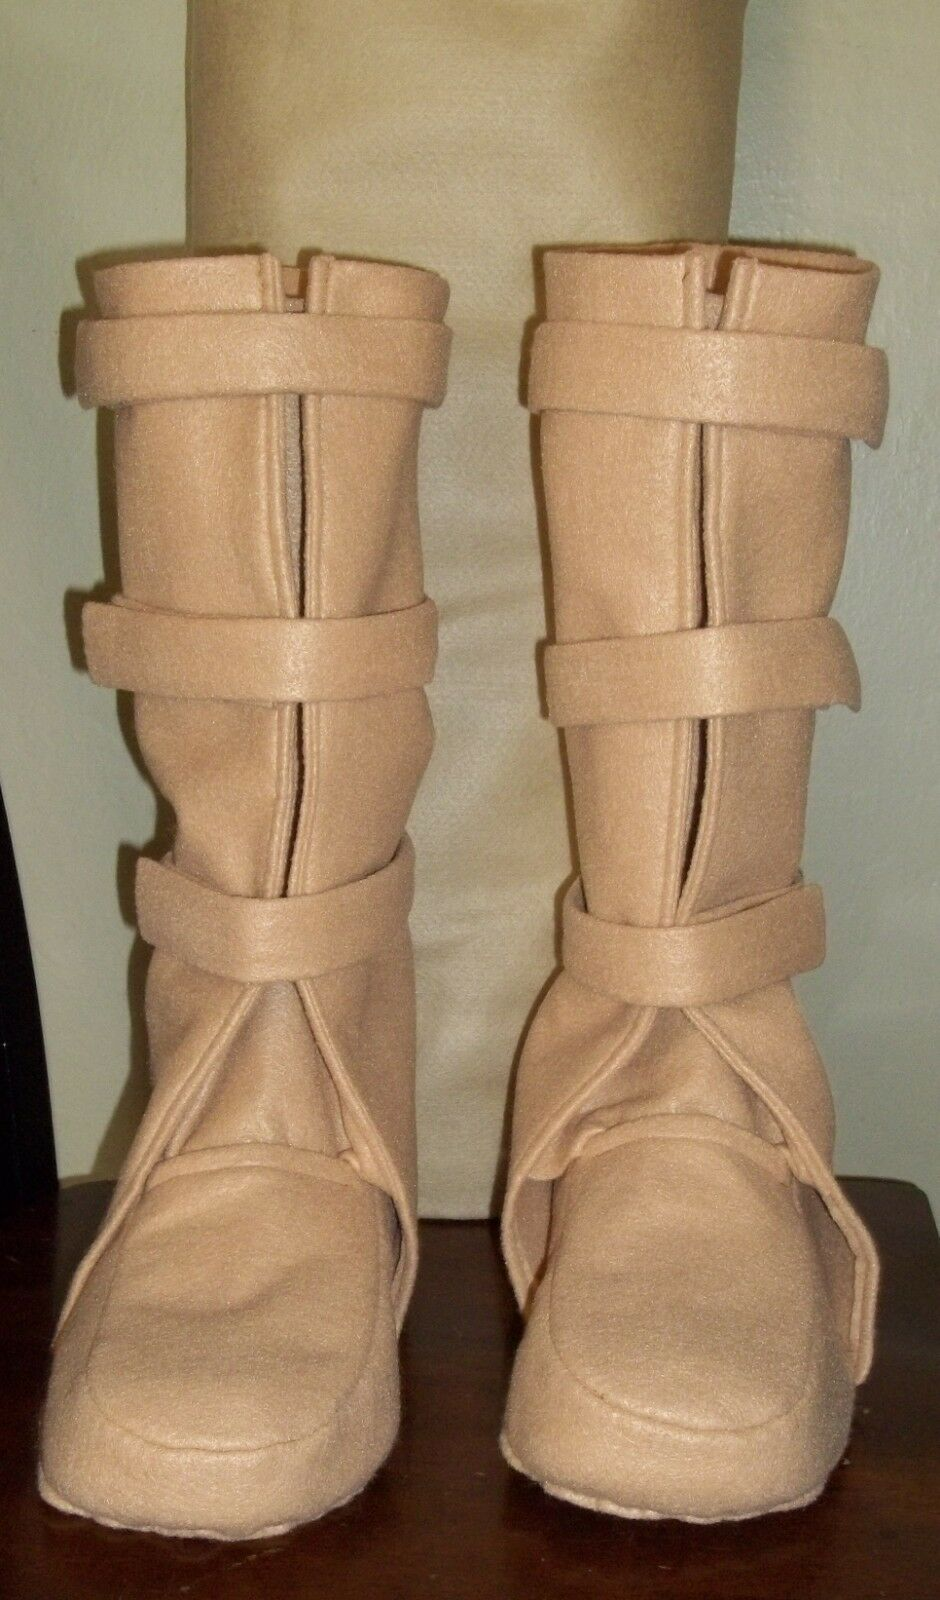 Bespin Boots Costume Shoe Covers That Luke Wore On Dagobah No-paint Design  - $70.00